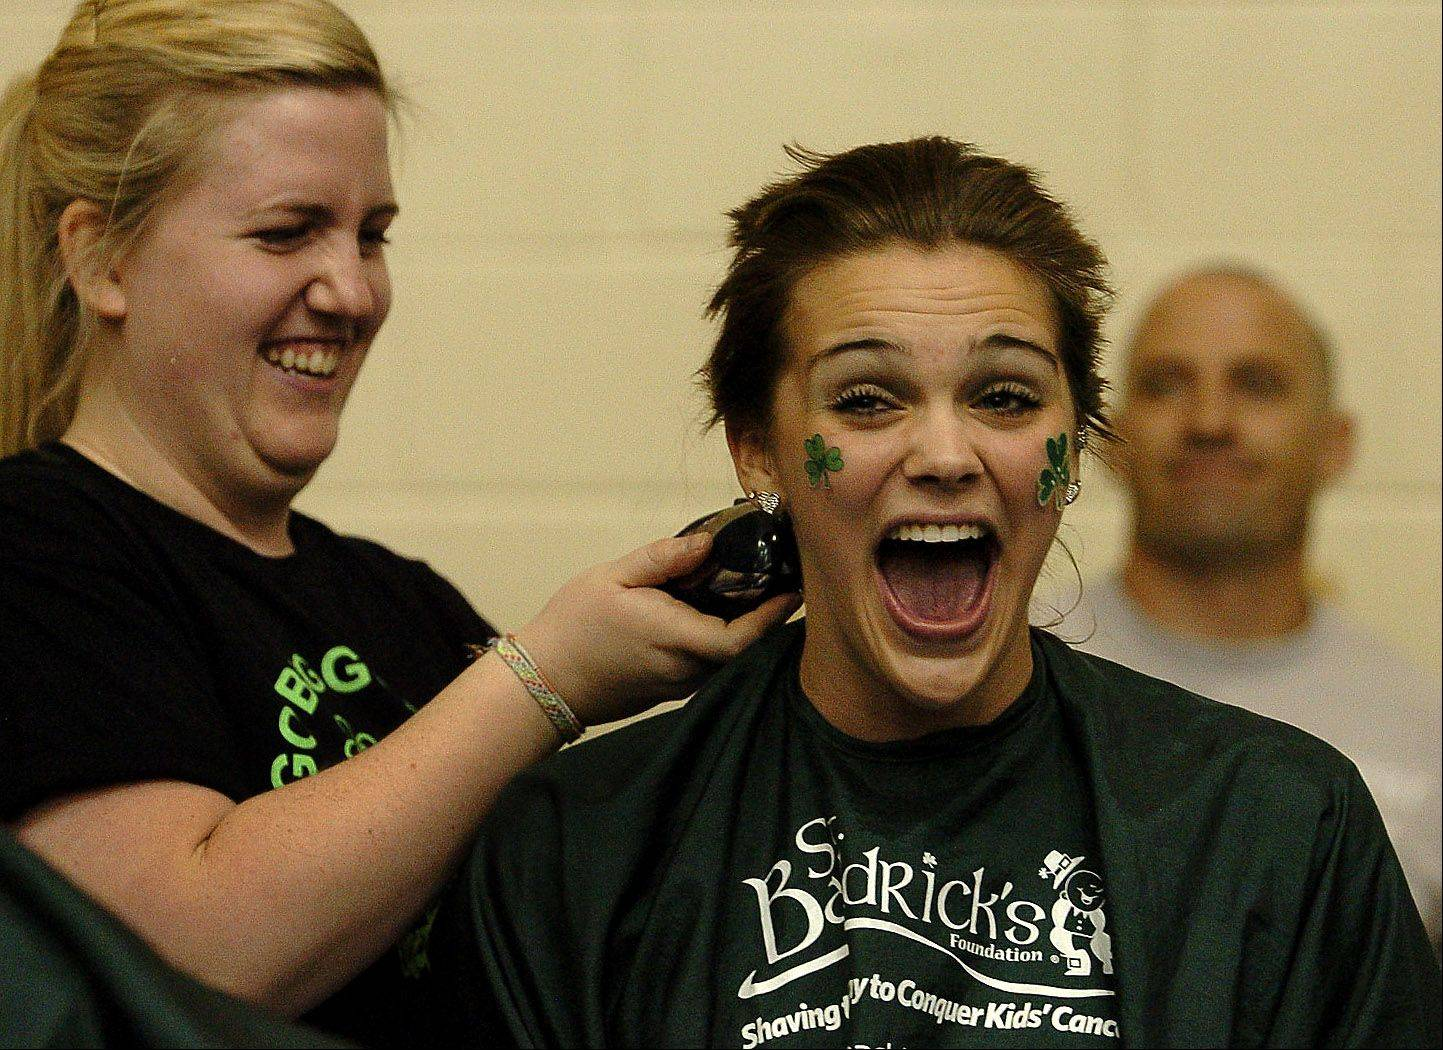 Krystal Vezzetti, who raised $1,293., gets her head shaved by Sarah Hoth of the Hair Cuttery, during the St. Baldrick's head shaving event at Schaumburg High School.